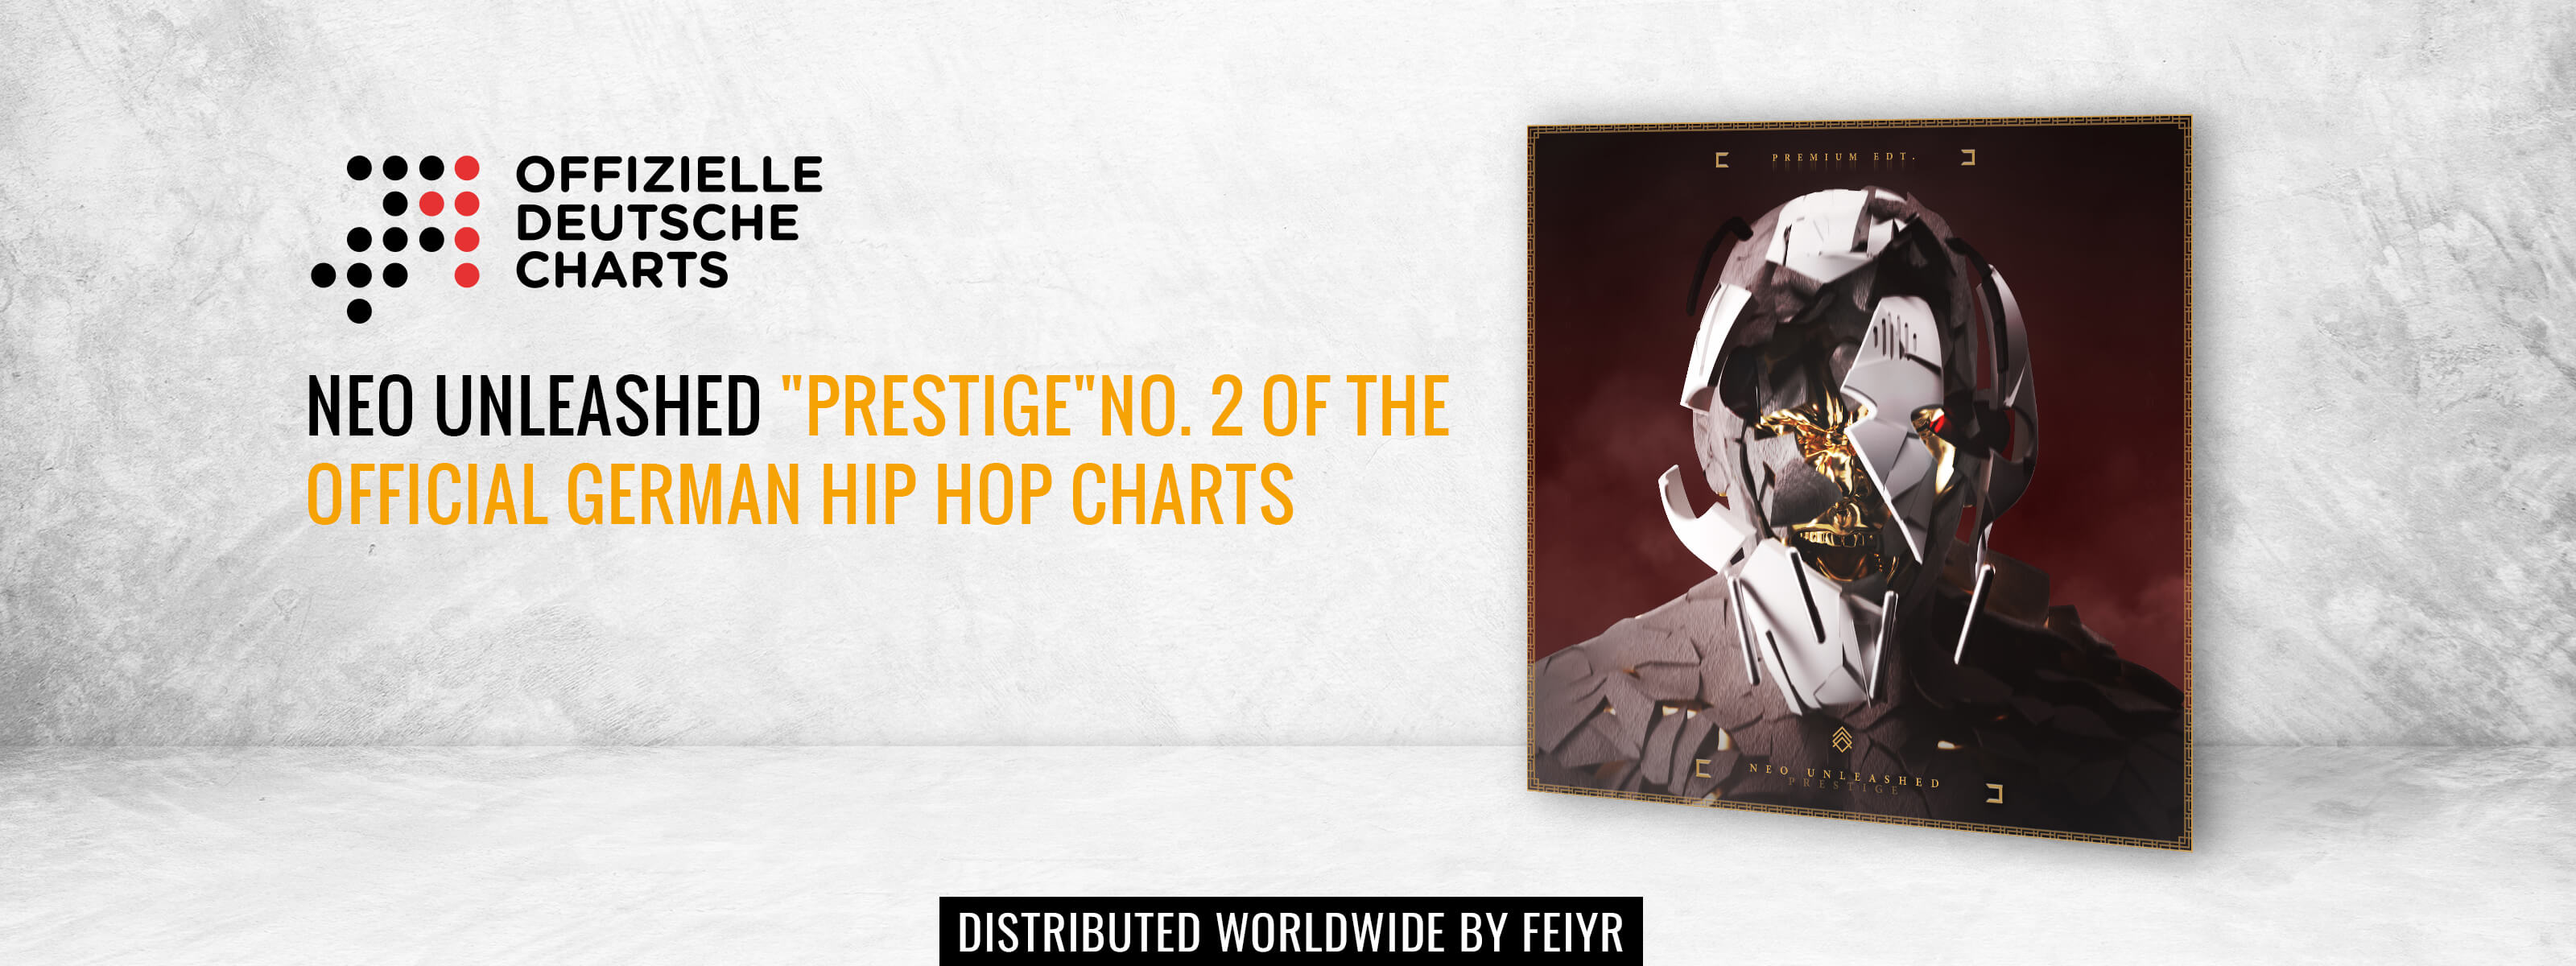 Neu Unleashed Prestige Platz 2 HipHop Charts